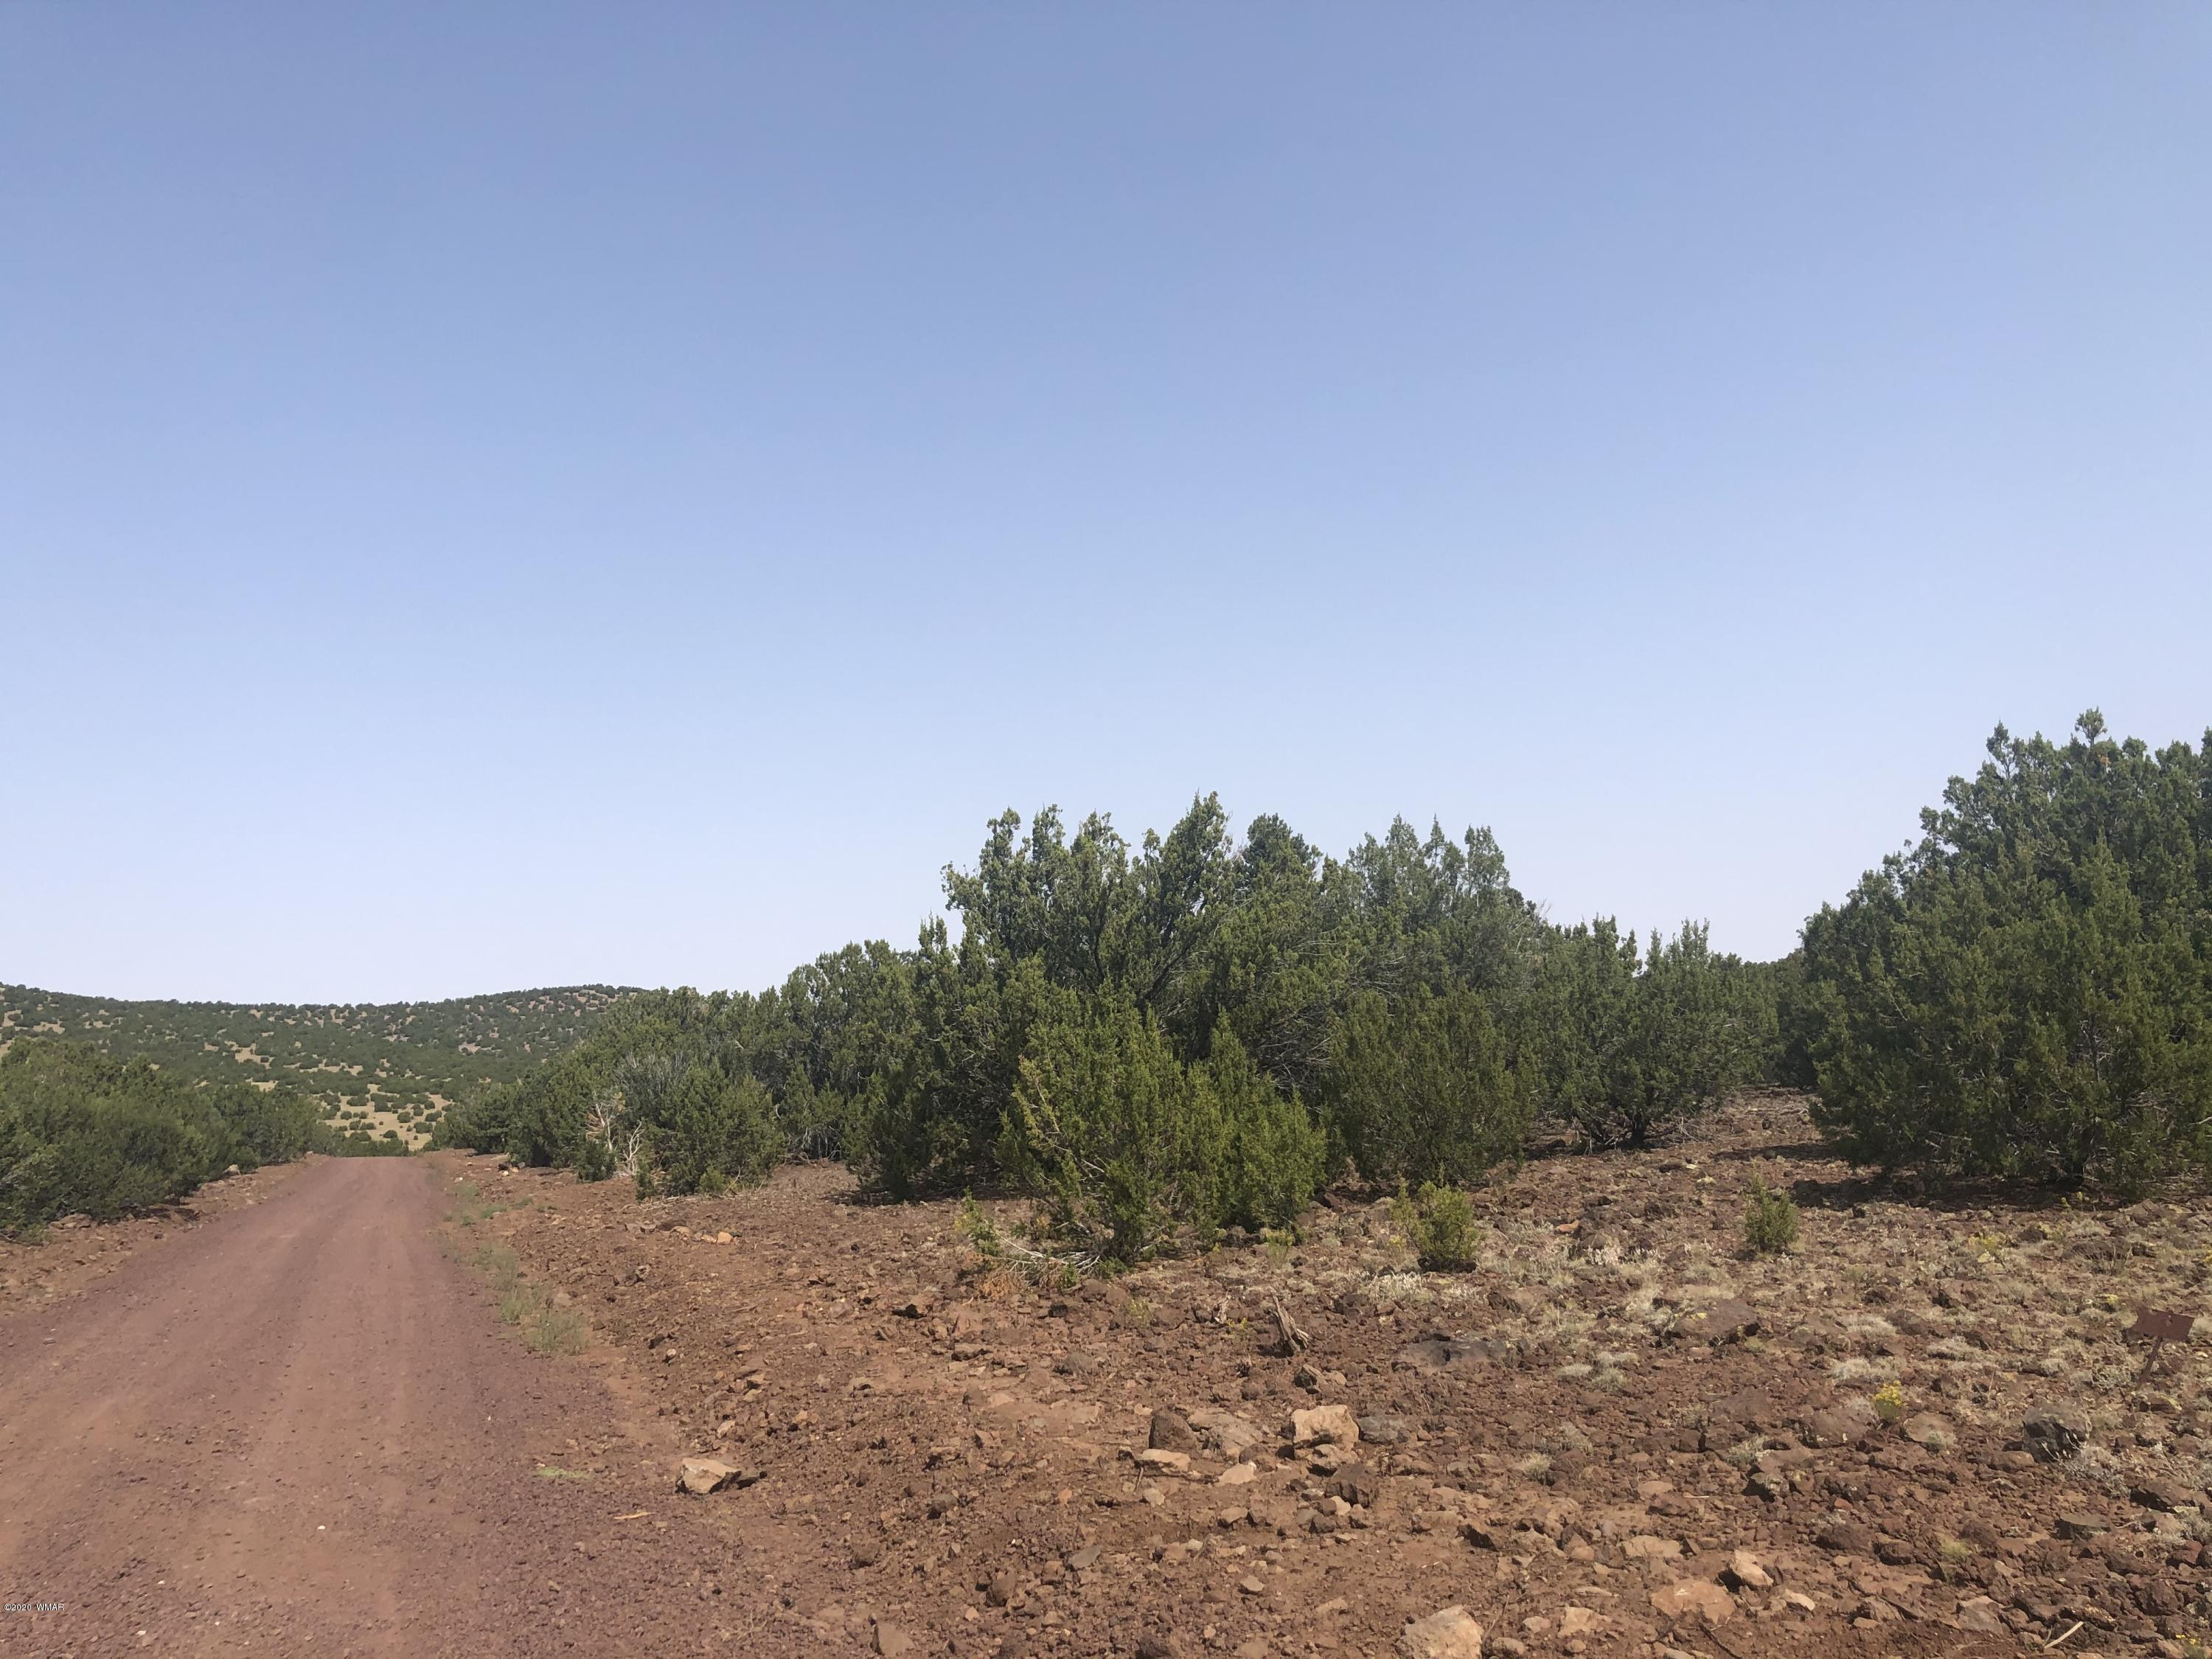 lot 141, Vernon, Arizona 85940, ,Lots And Land,For Sale,lot 141,231886